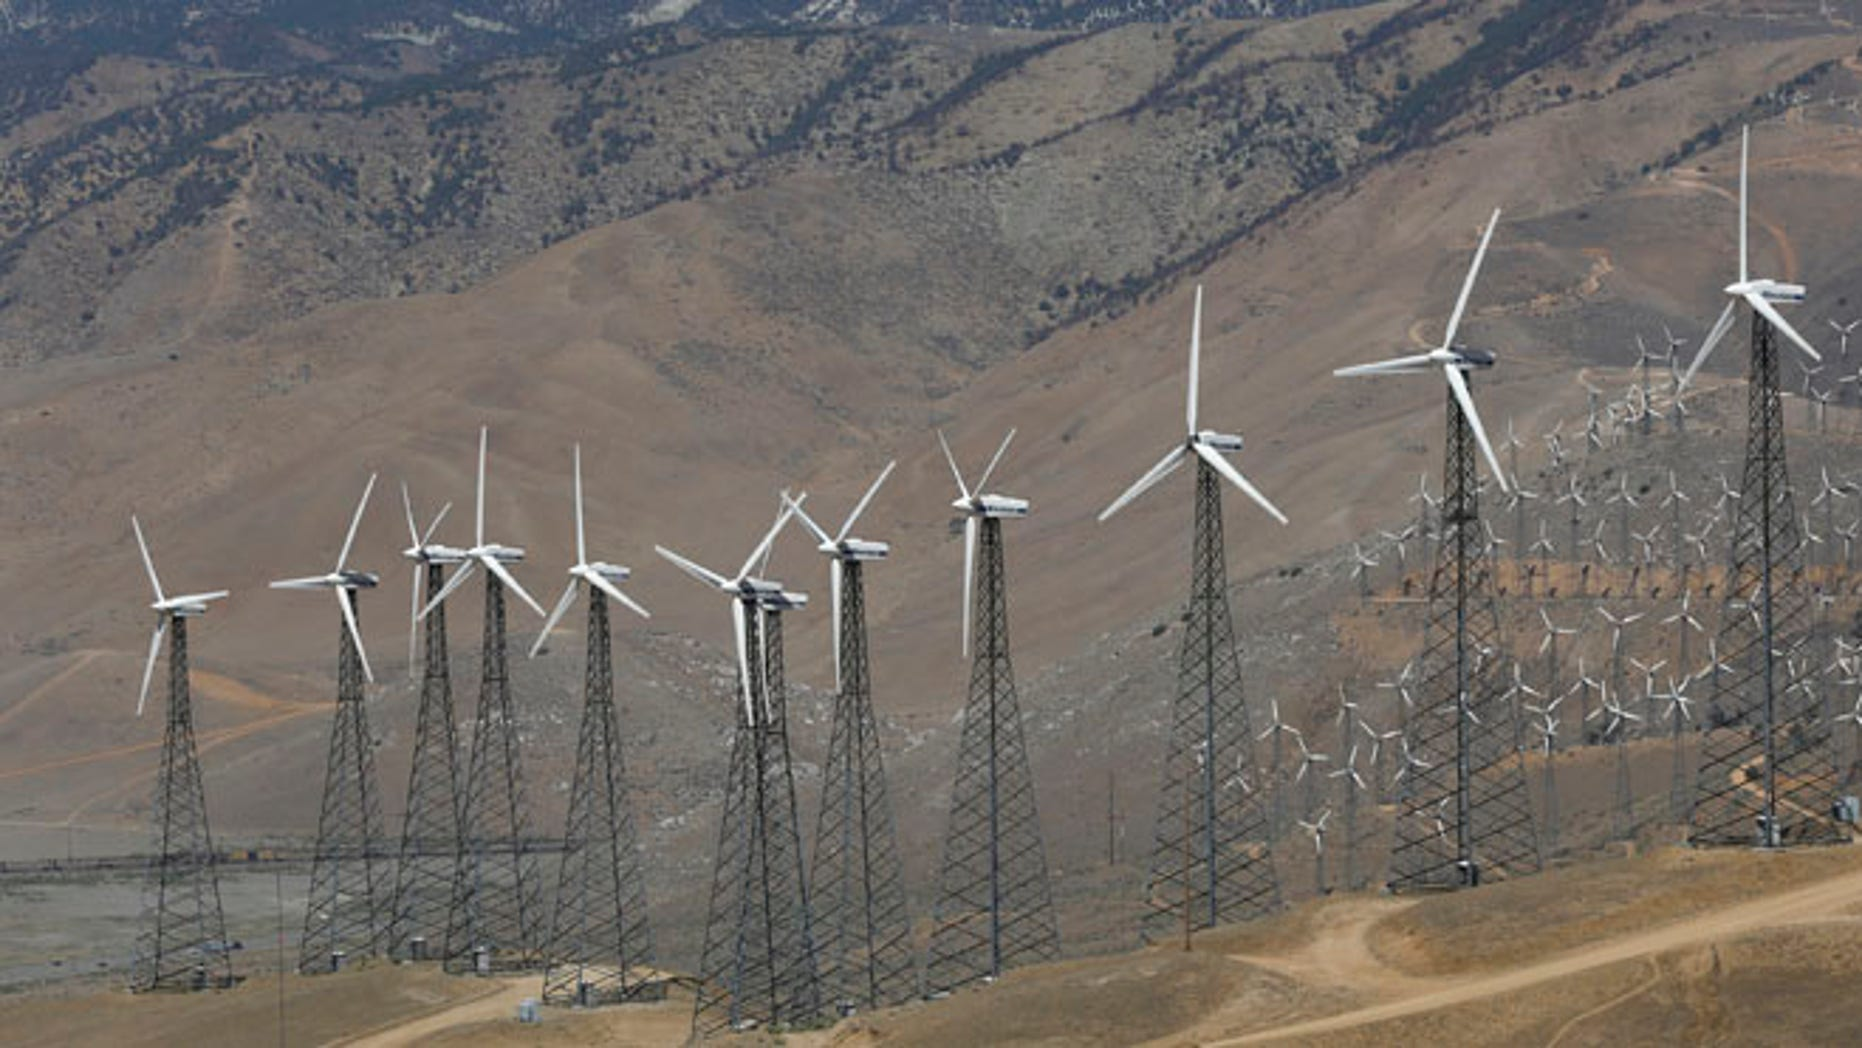 FILE: A wind farm, part of the Tehachapi Pass Wind Farm, is pictured in Tehachapi, California.